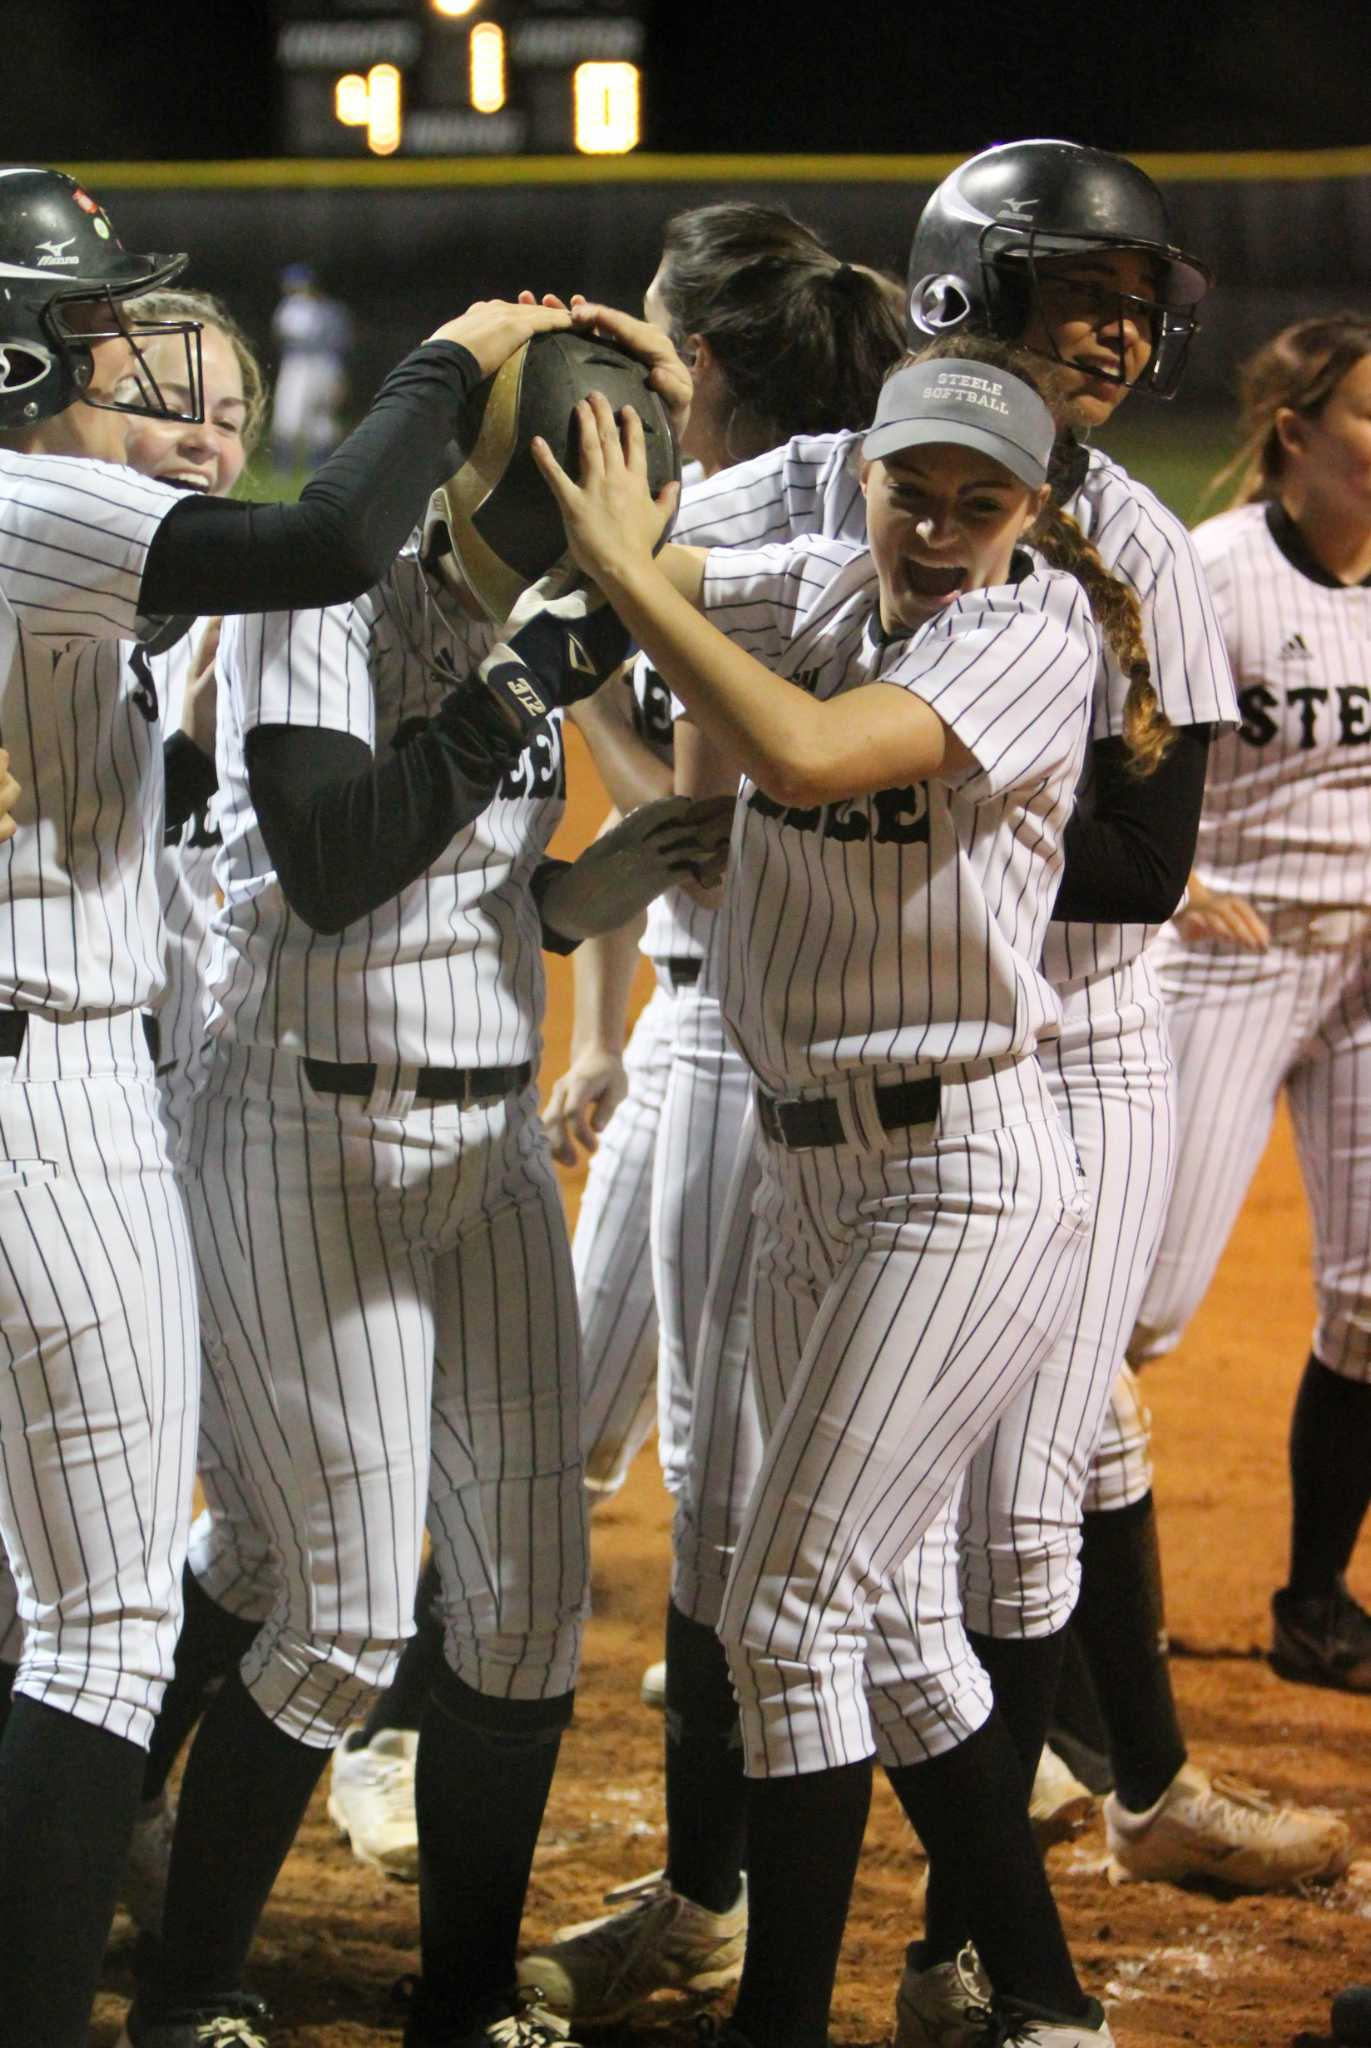 Steele notches second district win of the season.